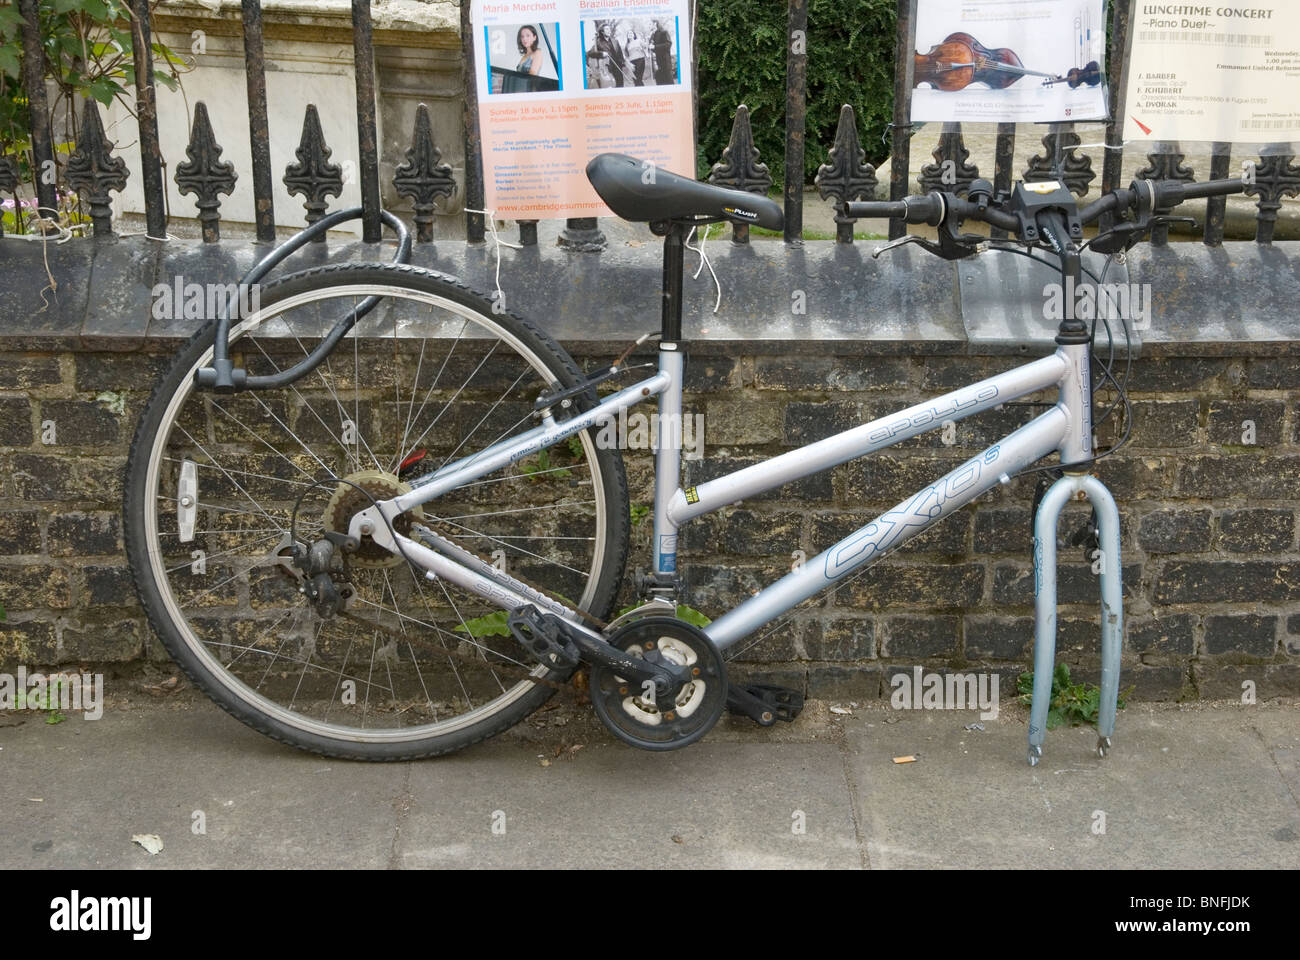 By securing only the rear wheel this Cambridge cyclist has been an easy target for a bicycle thief - Stock Image